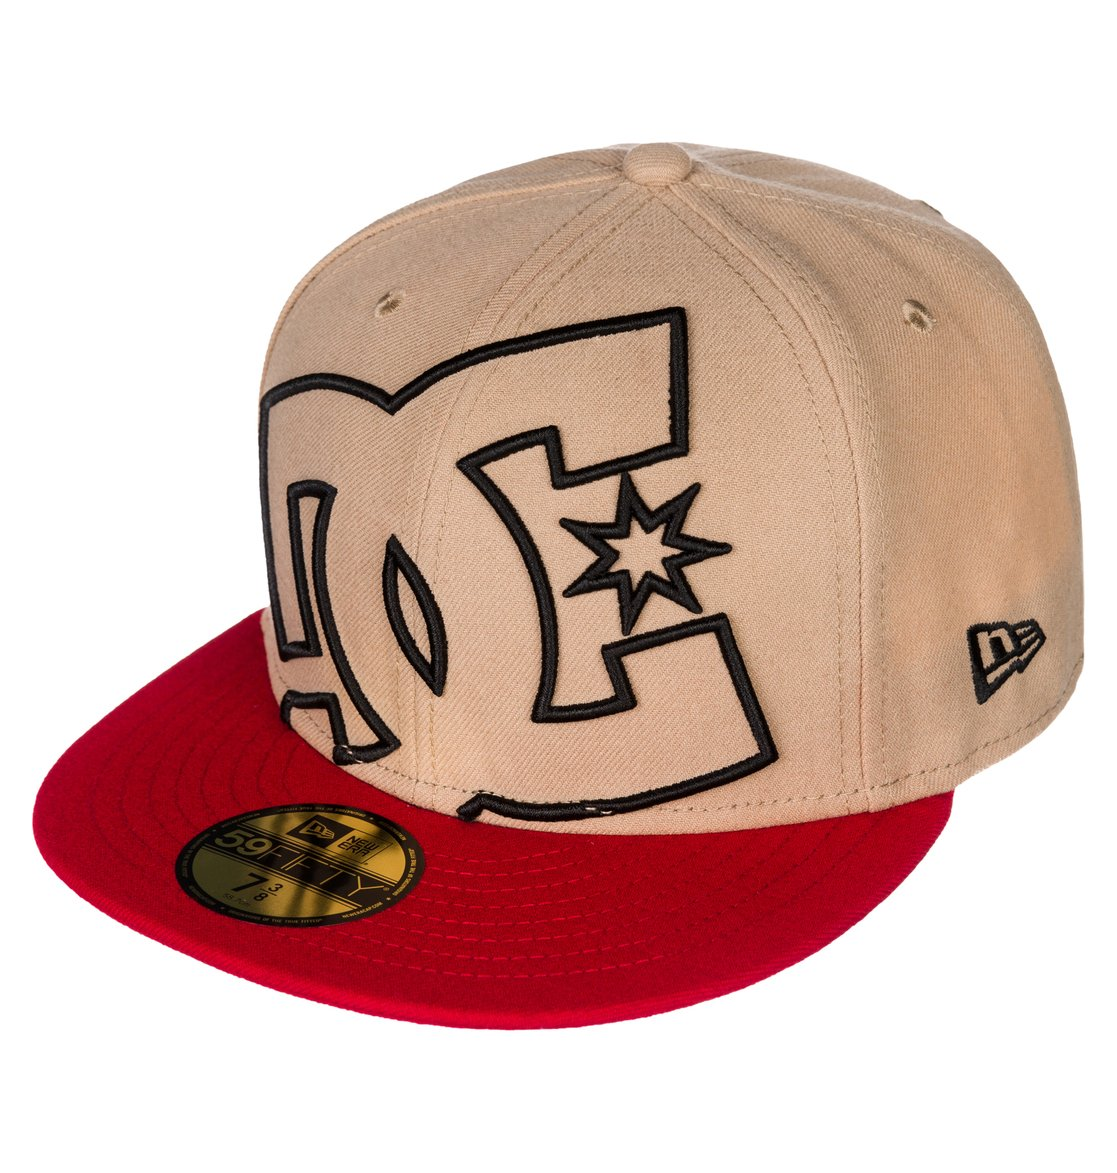 Coverage - Dcshoes������� ��������� Coverage �� DC Shoes. <br>��������������: New Era 59fifty, ������� 3D-������� DC � �������� ���������, ��������� ������� ������� DC, ���������� �������� 59FIFTY� � ������ ������������� � �� ��������. <br>������: 100% ���������.<br>